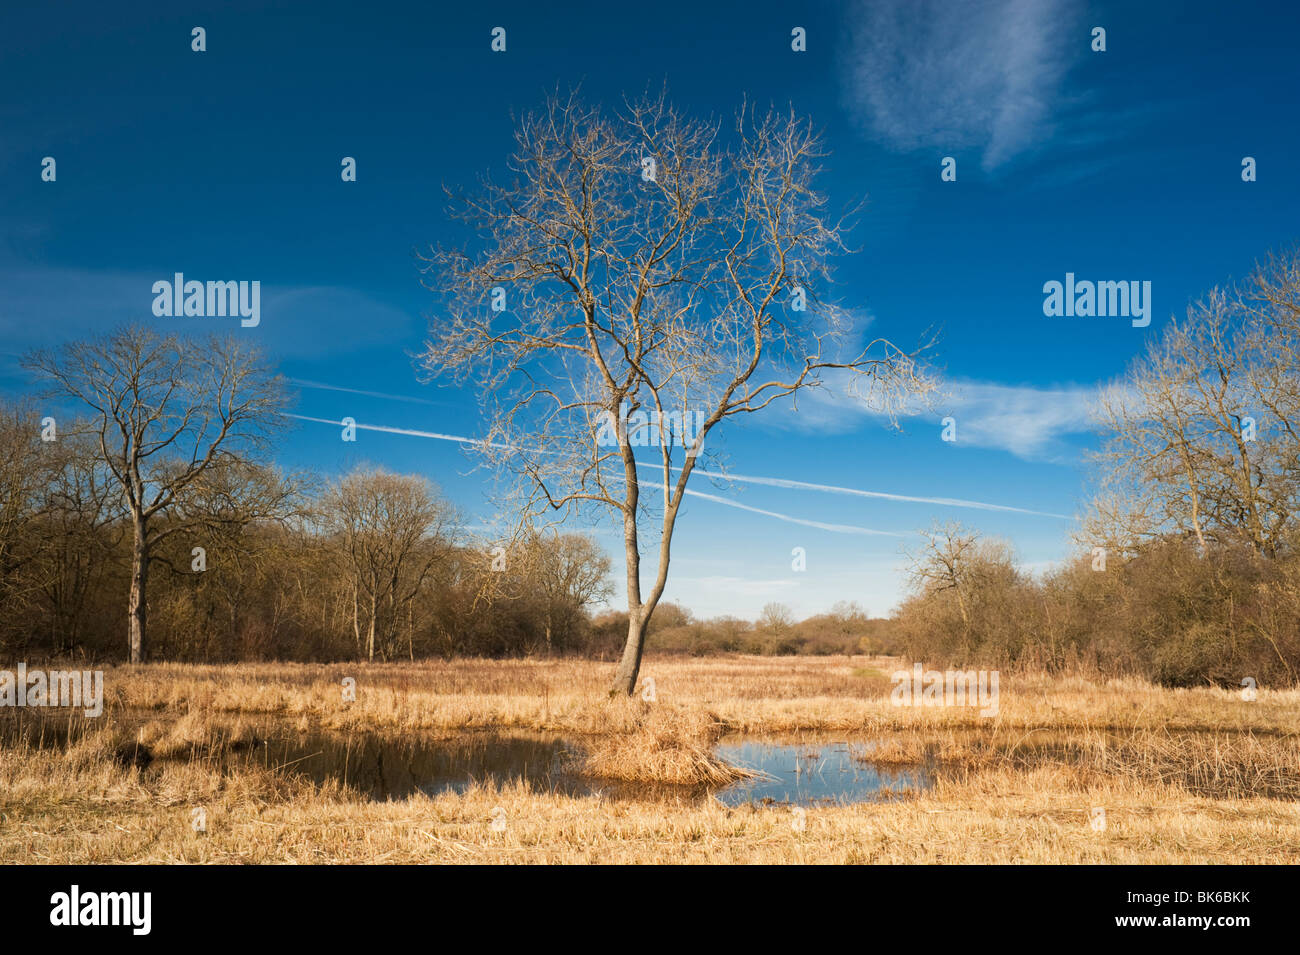 Leafless ash tree at Castor Hanglands National Nature Reserve, Cambridgeshire, in early March - Stock Image